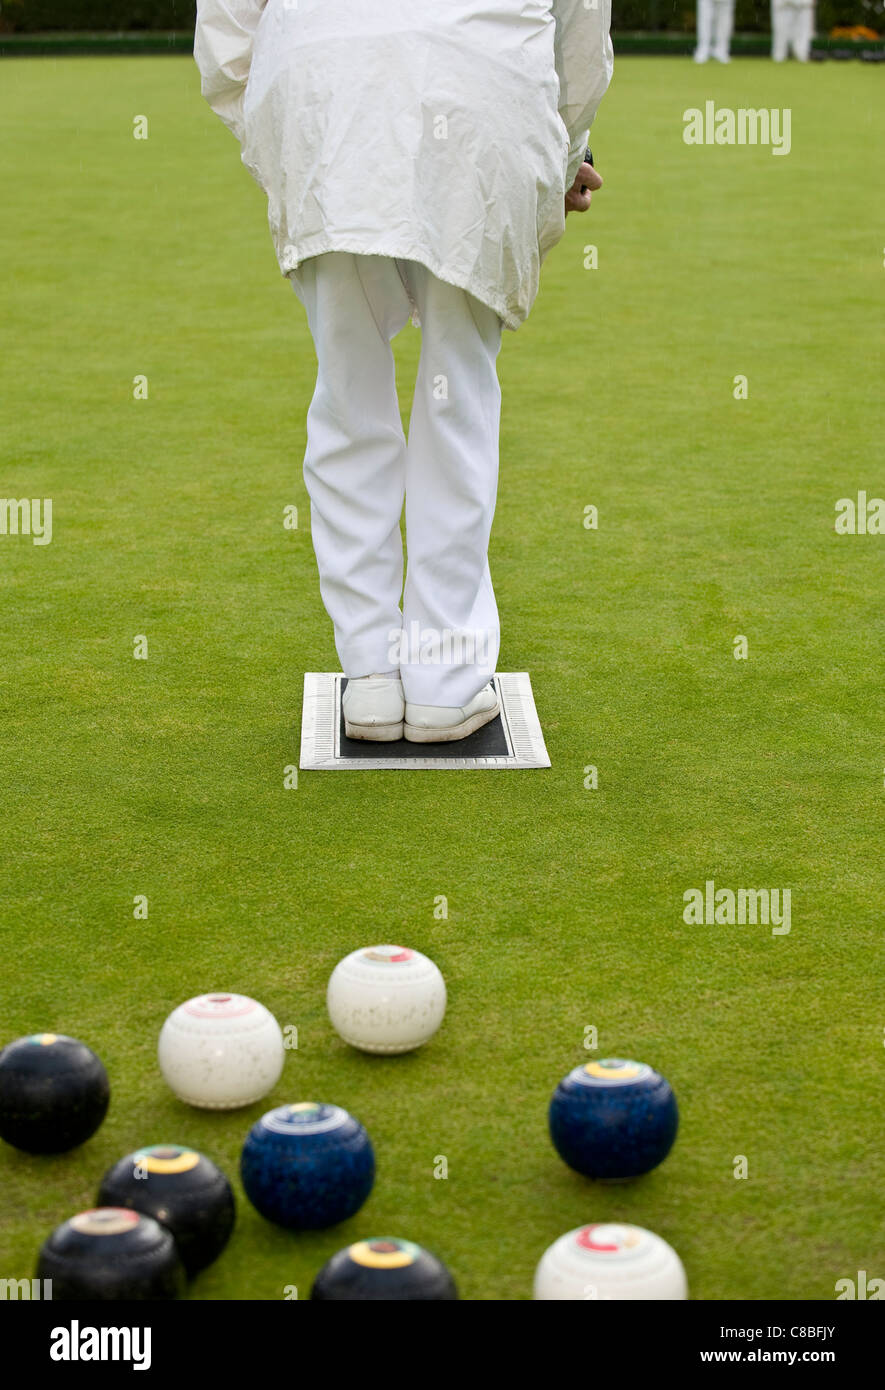 A person playing Lawn Bowls. - Stock Image